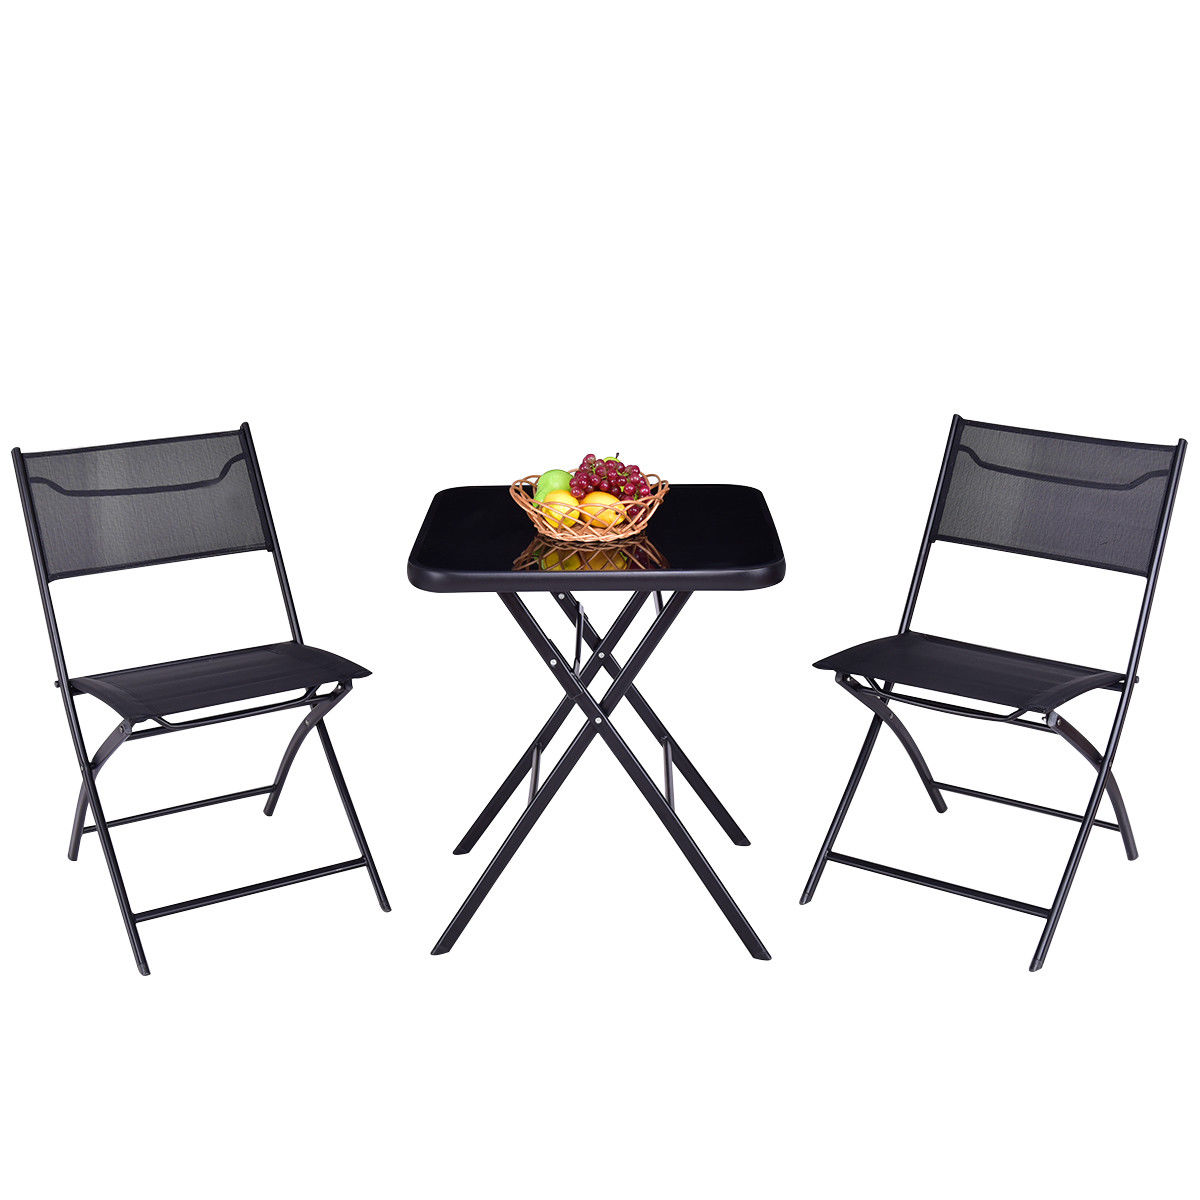 foldable table and chairs garden dining chair covers india gymax folding 3pc set square outdoor patio walmart com